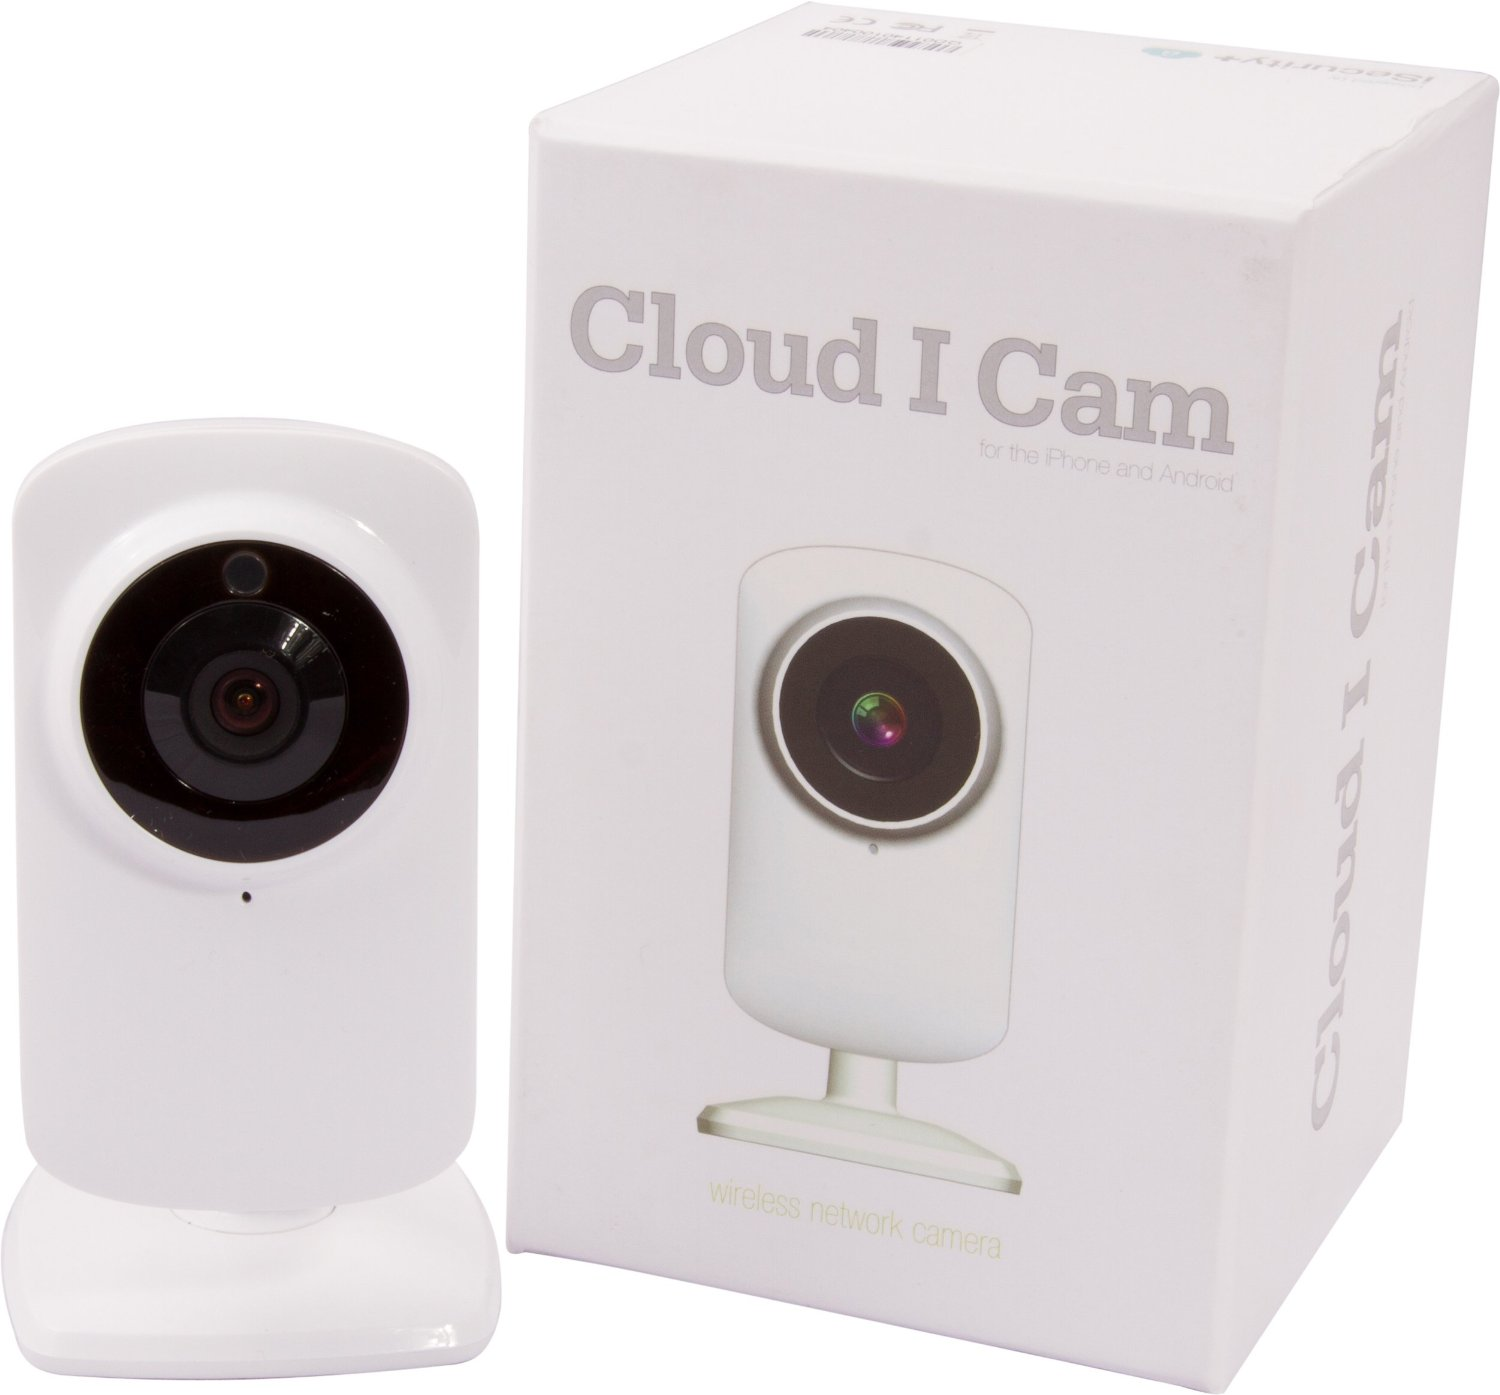 Colud iCam Phone Remote Monitoring